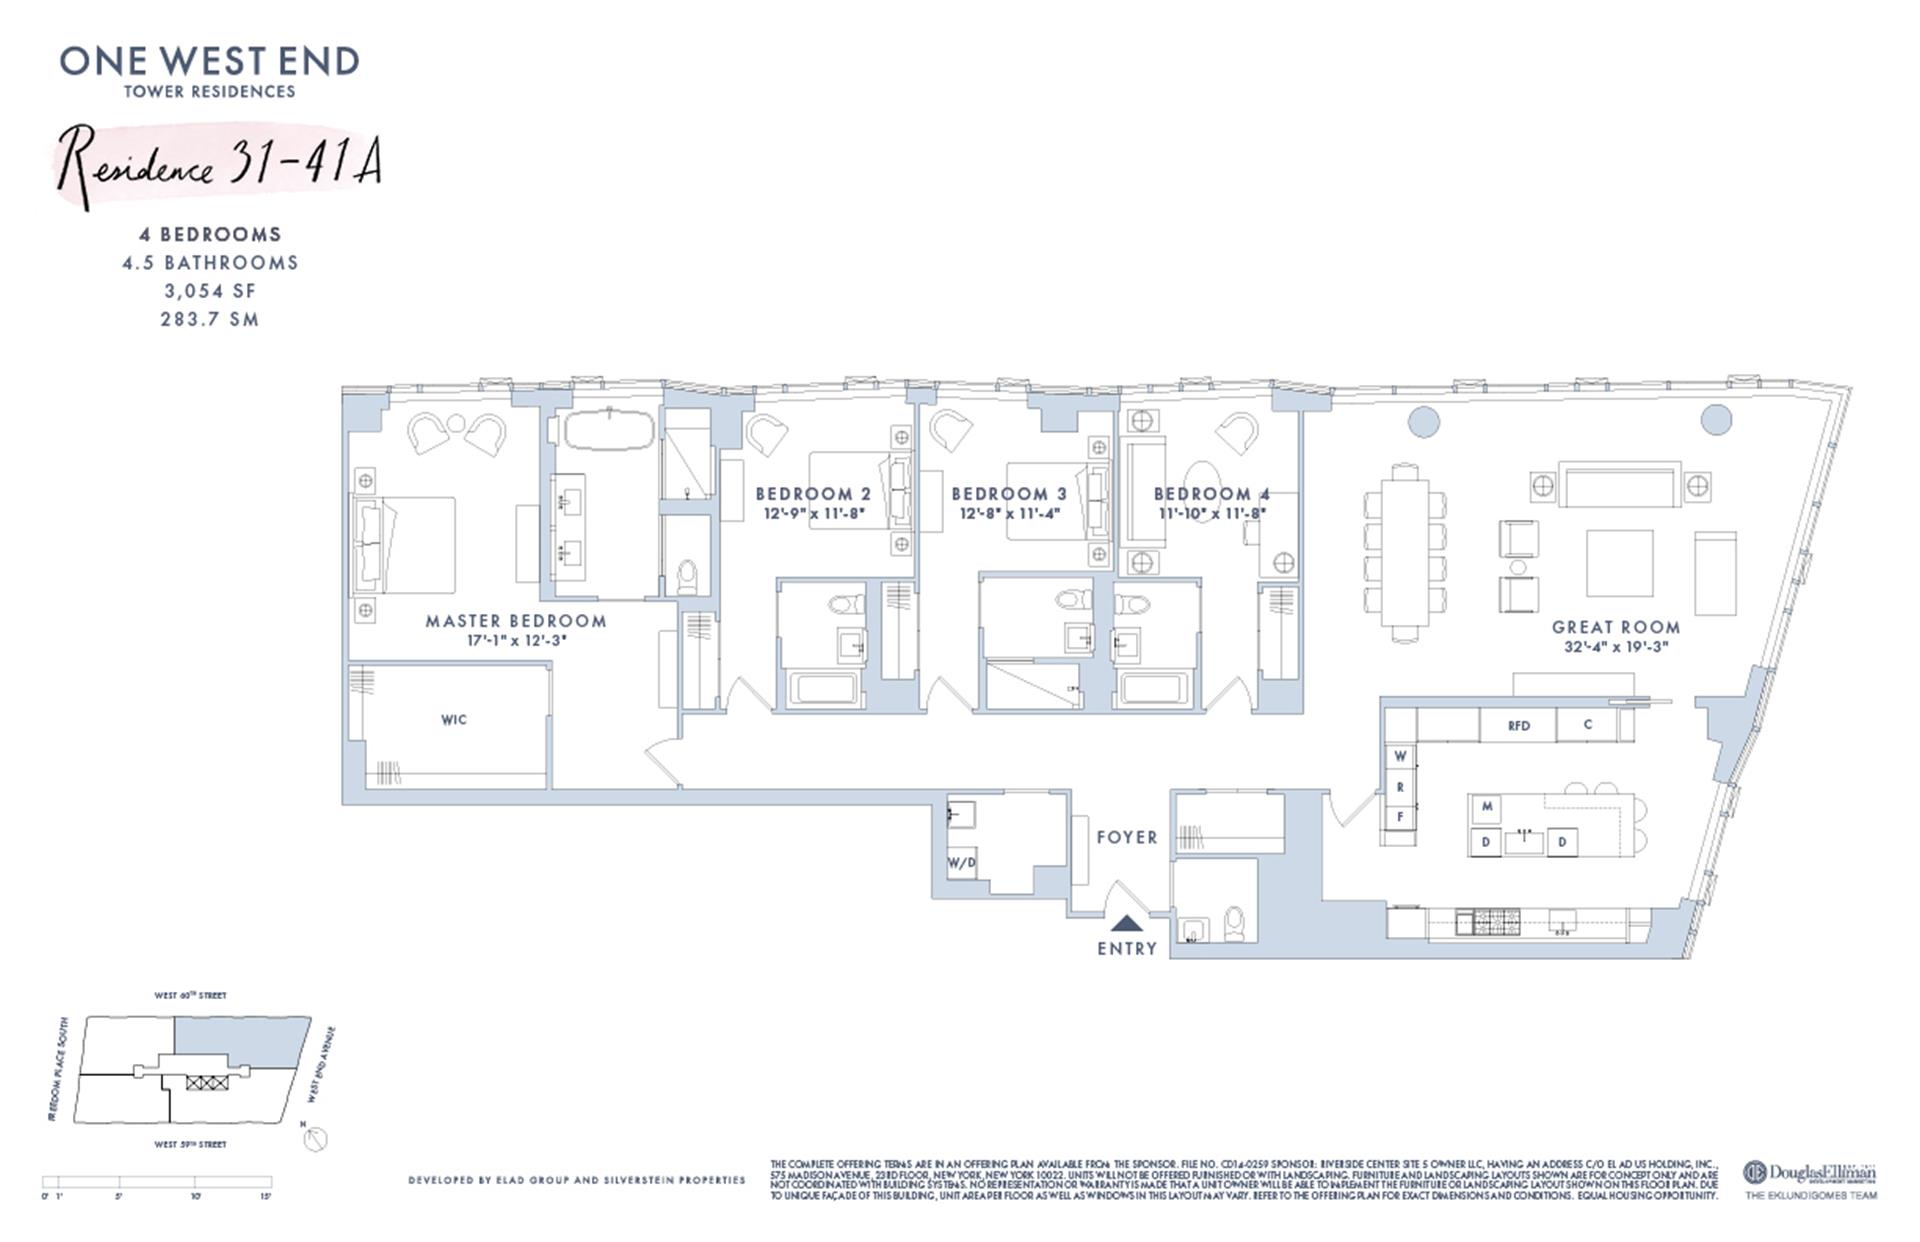 Floor plan of One West End, 1 West End Avenue, 33A - Upper West Side, New York